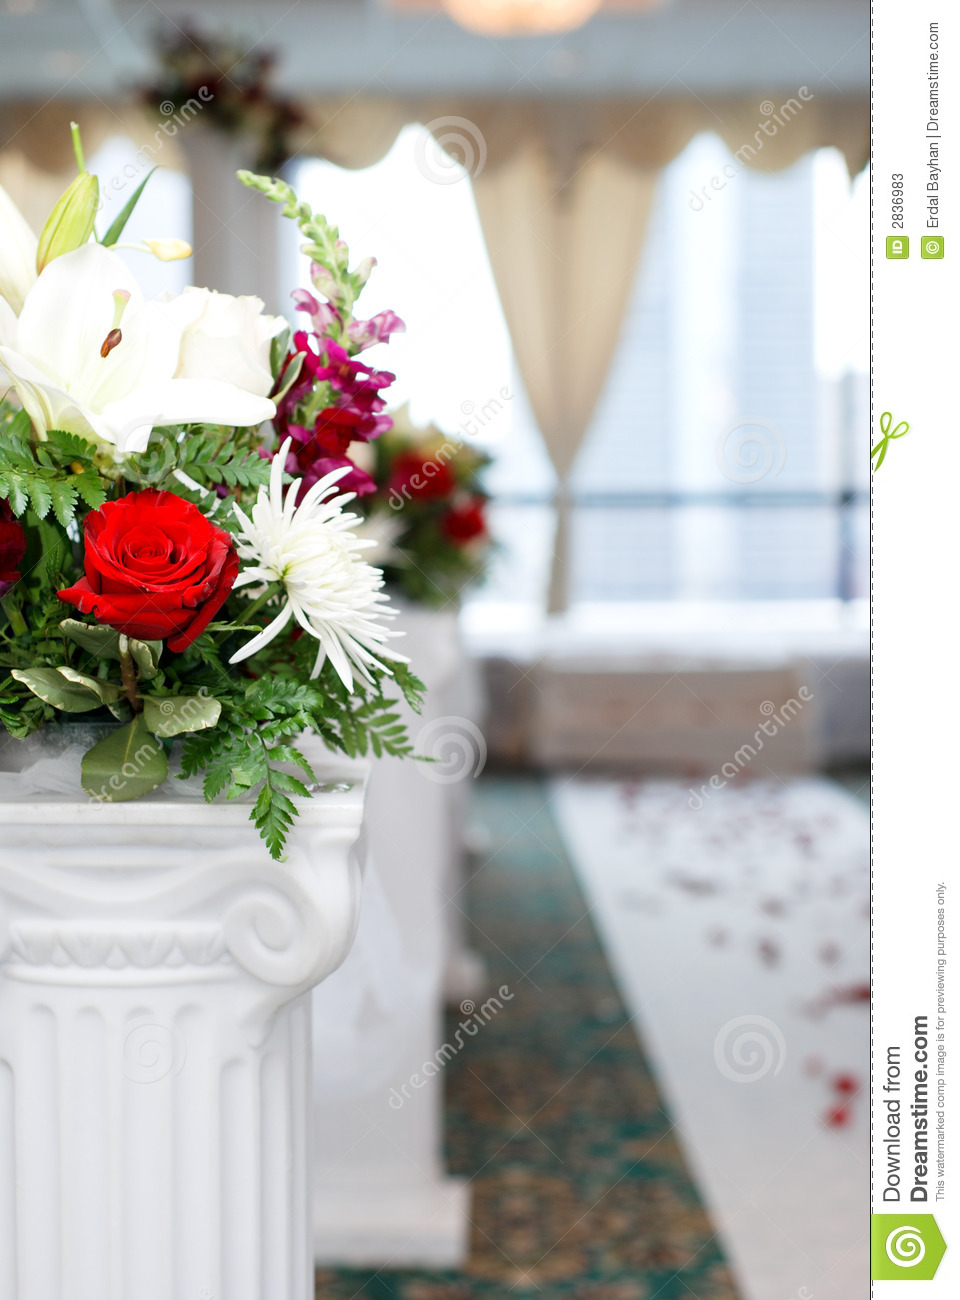 Download Wedding stock image. Image of flowers, married, woman - 2836983